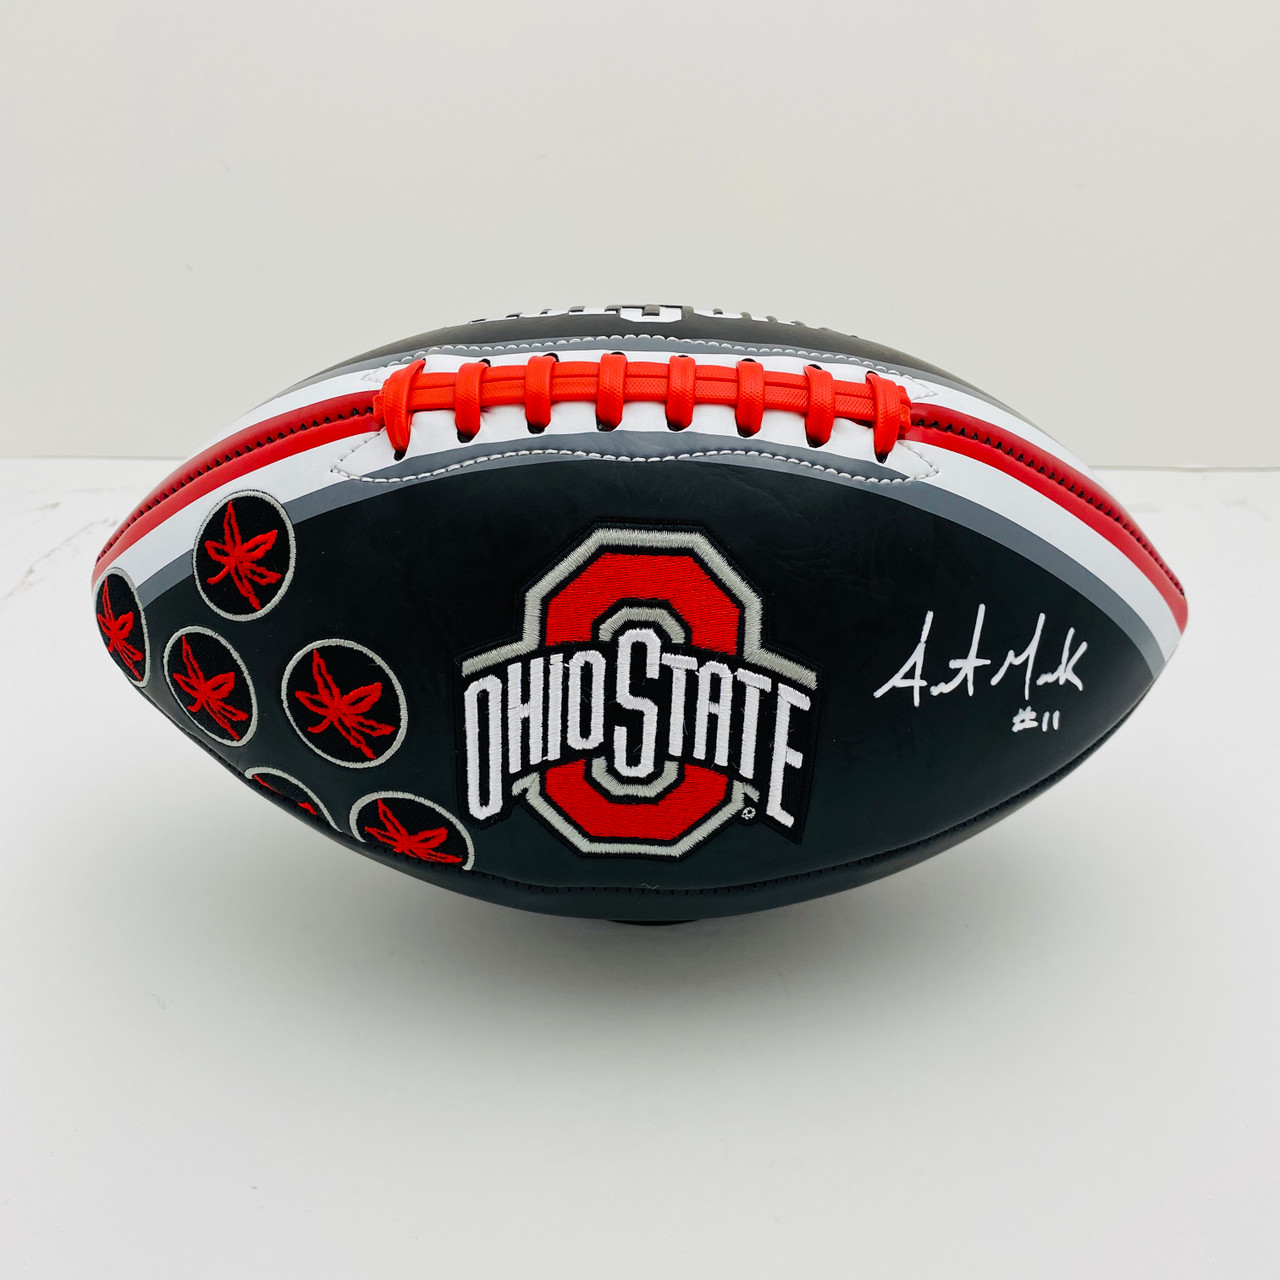 Austin Mack Ohio State Buckeyes Autographed Black Football - Certified Authentic